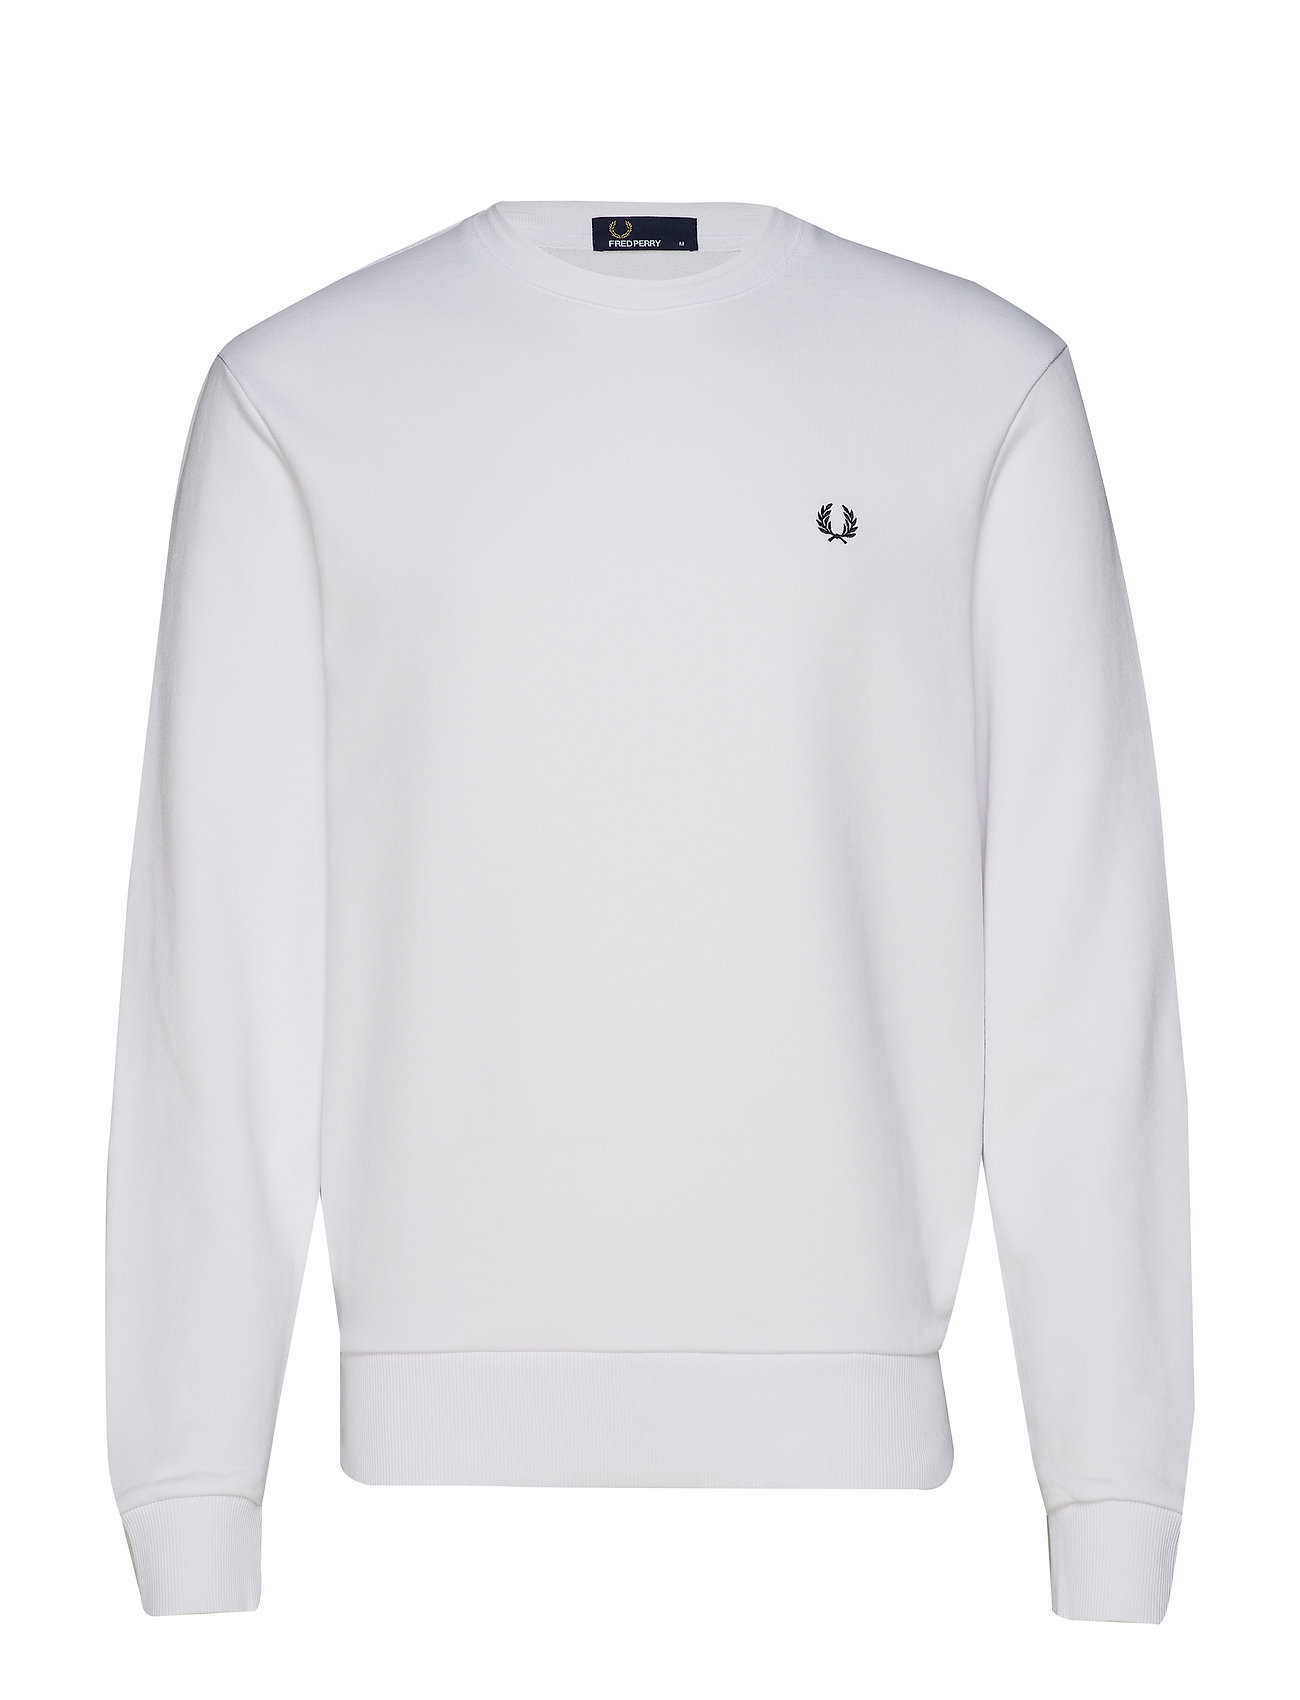 Fred Perry Laurel Wreath Sweatsh. - WHITE